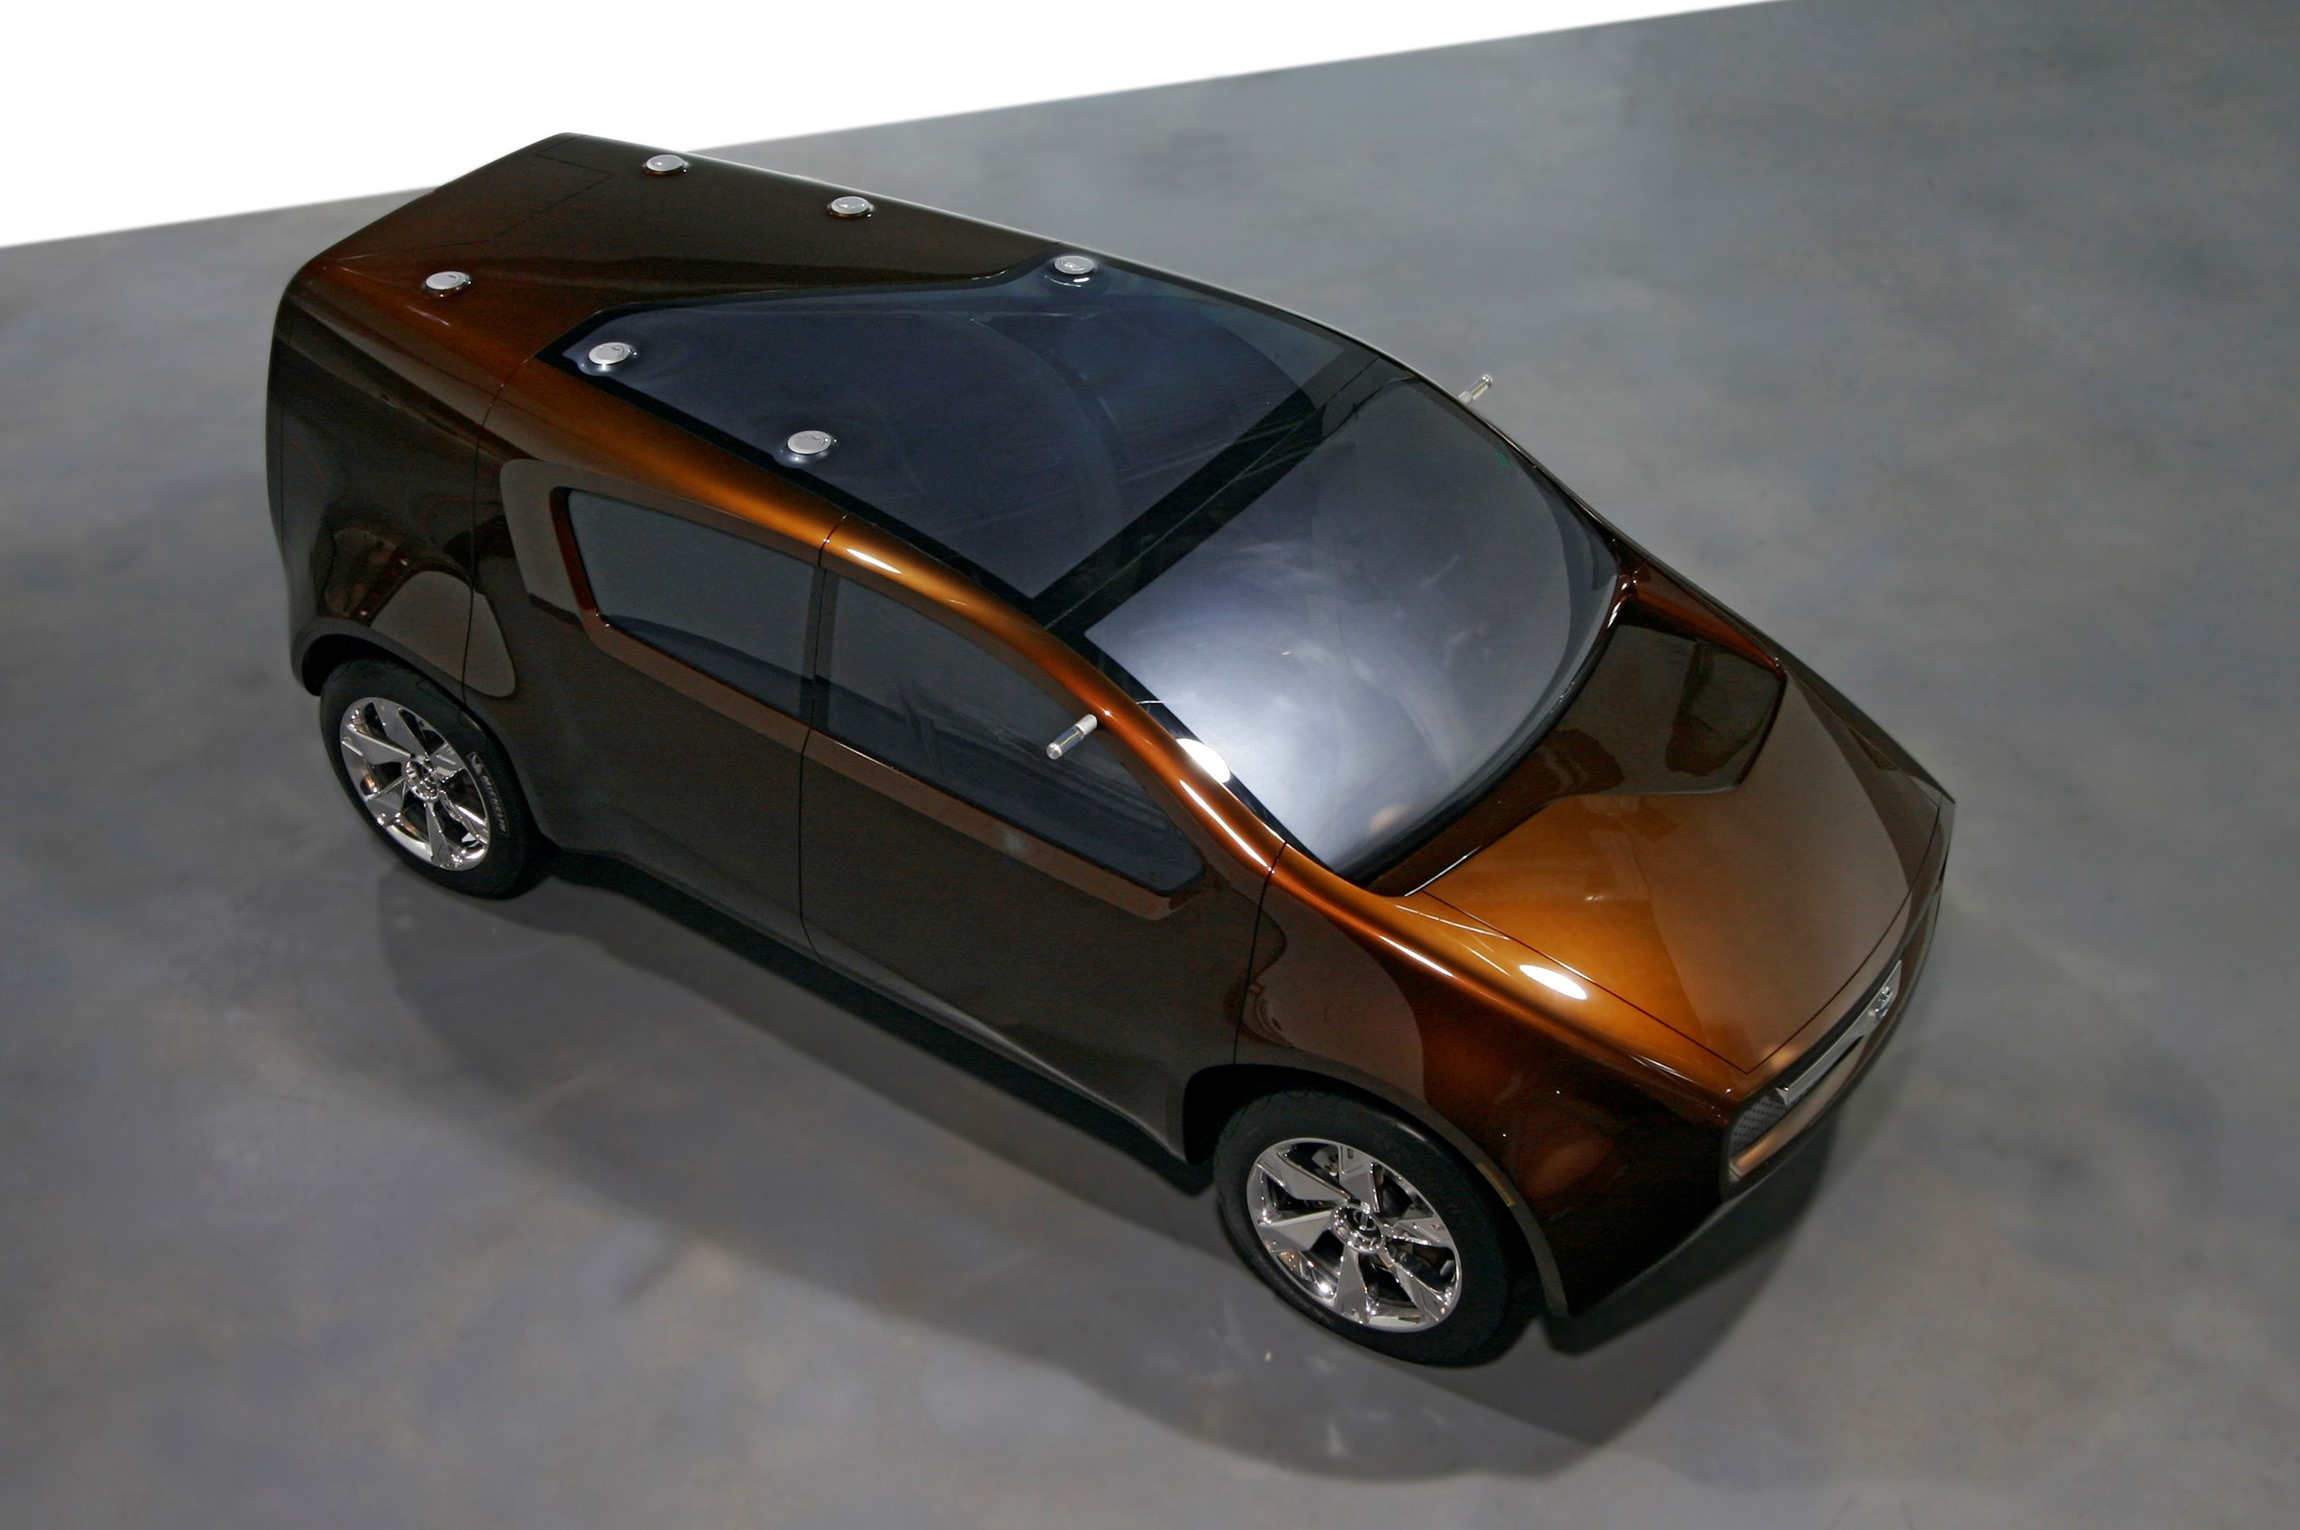 2007 nissan bevel concept 22 car revs daily first 10 images from this article vanachro Gallery